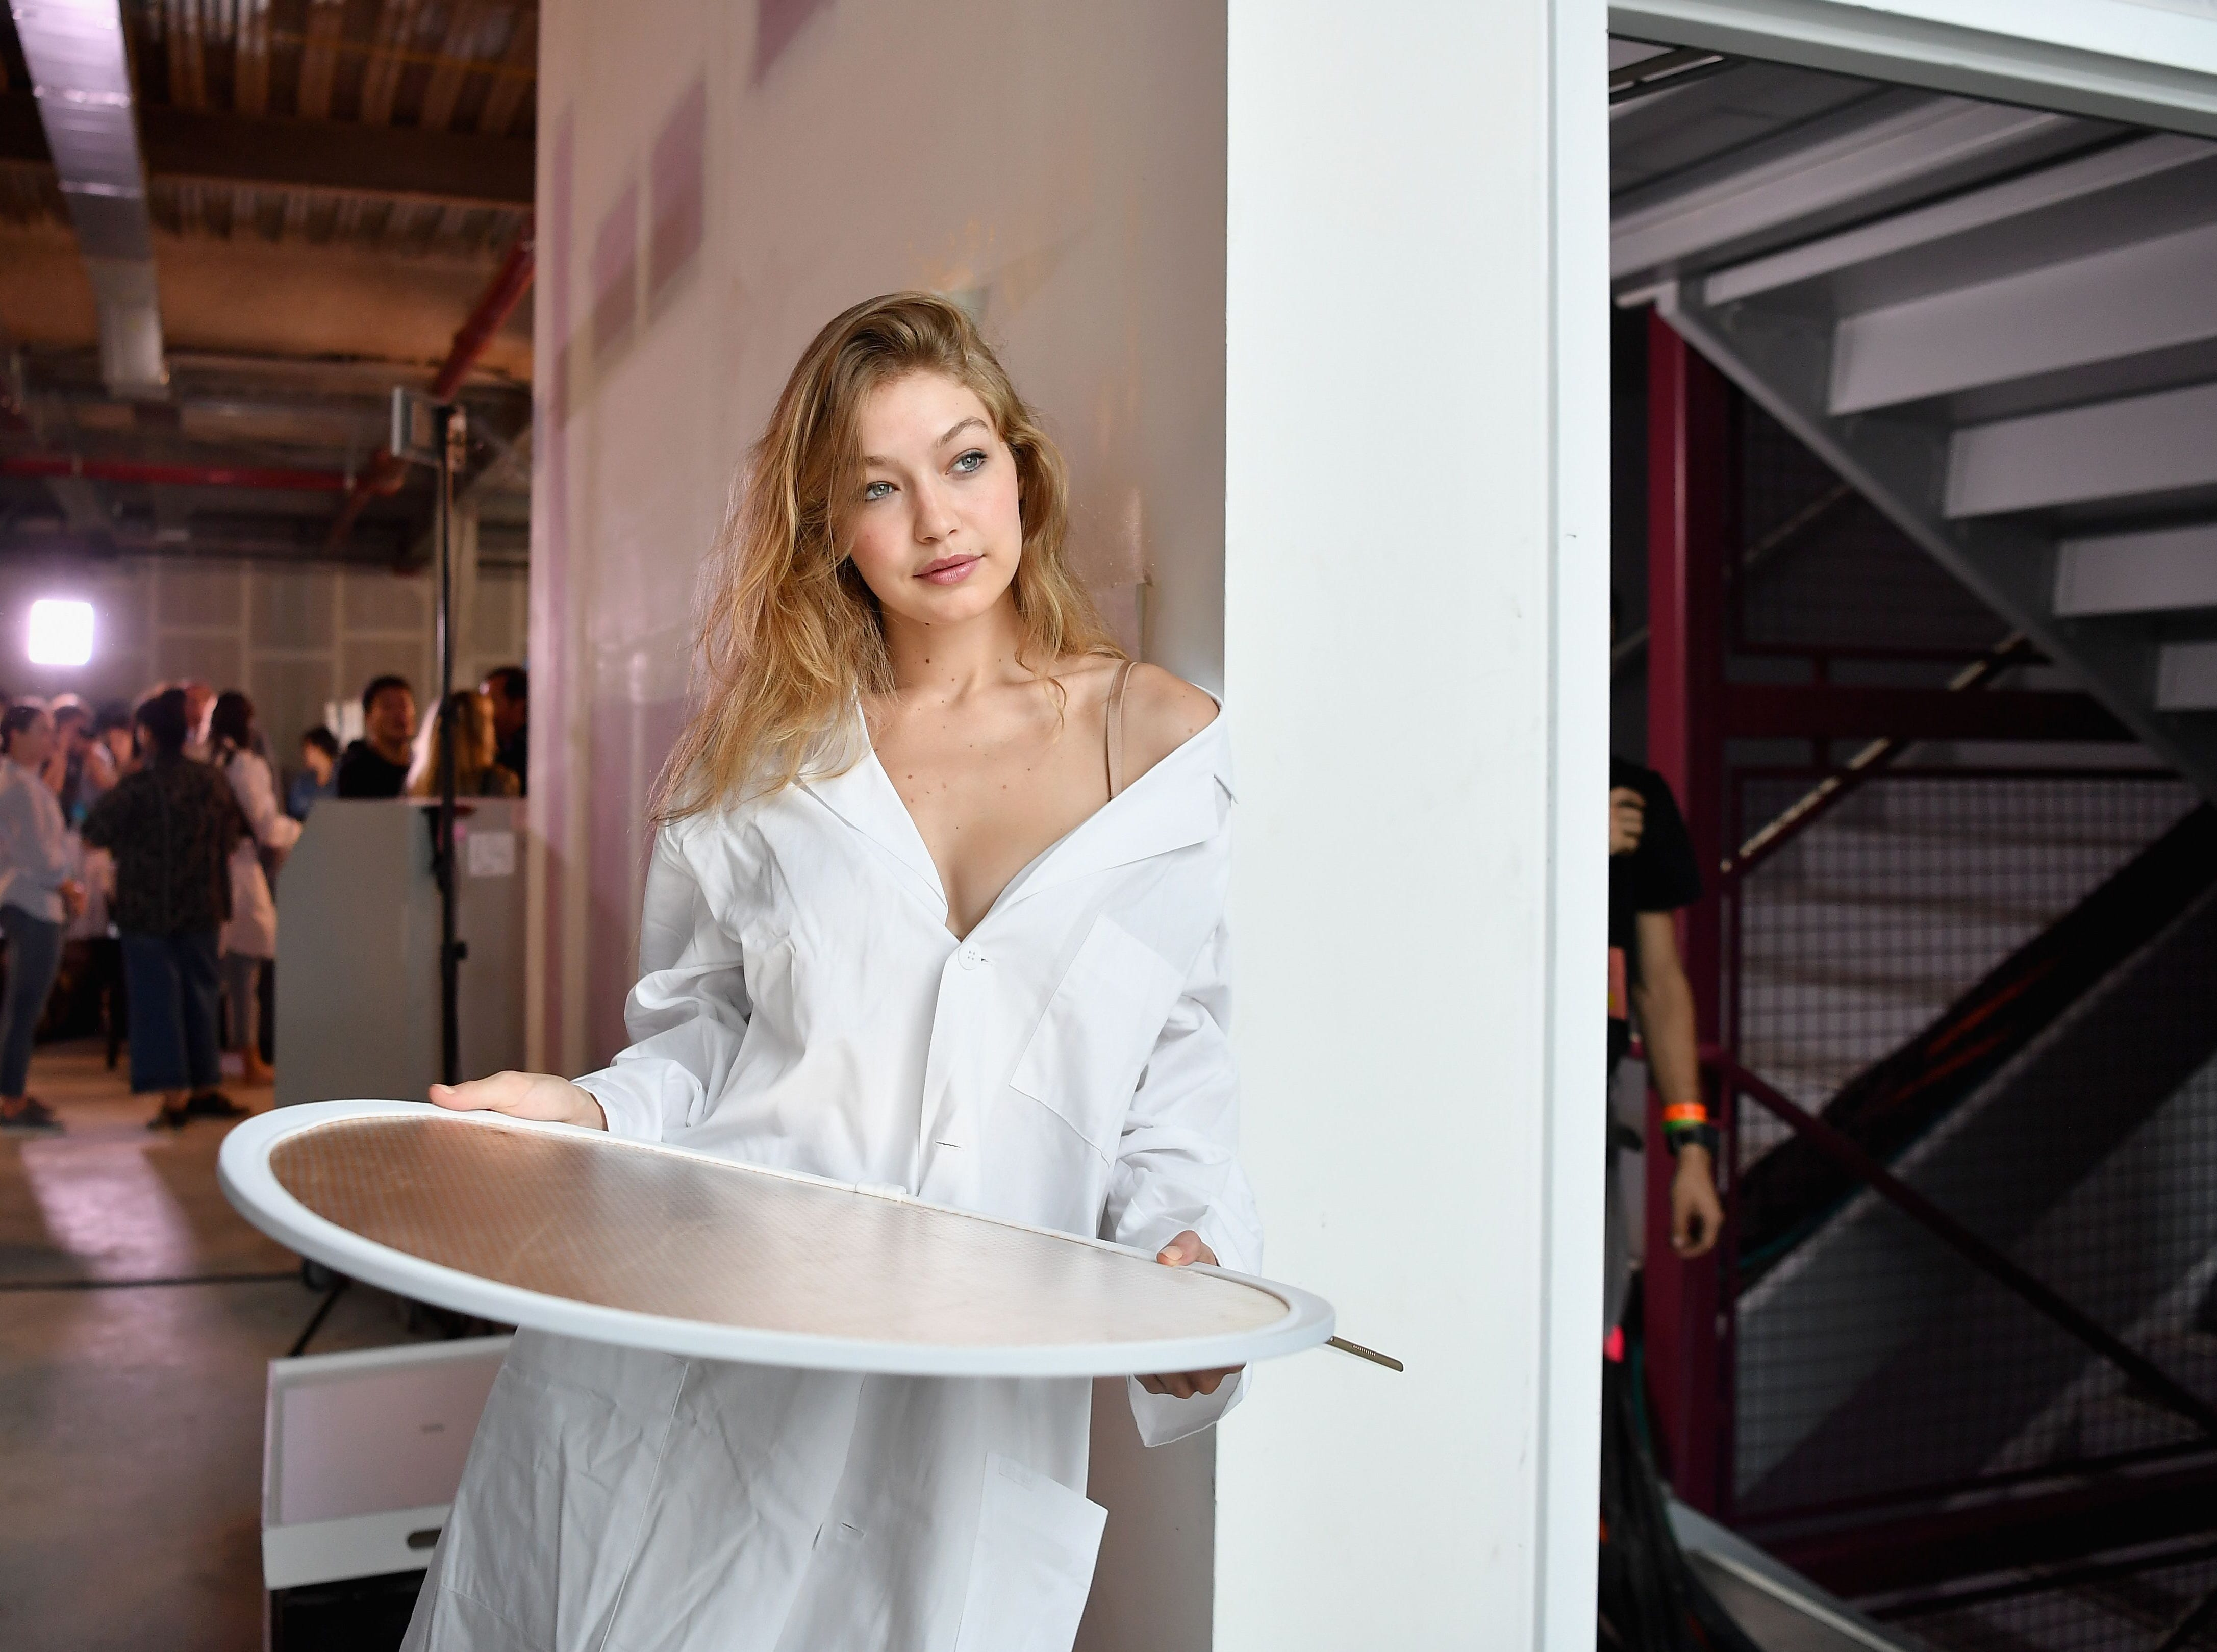 Model Gigi Hadid poses for photos backstage at the Michael Kors Collection Spring 2019 Runway Show at Pier 17 on September 12, 2018 in New York City. (Photo by Angela Weiss / AFP)ANGELA WEISS/AFP/Getty Images ORIG FILE ID: AFP_1919JY